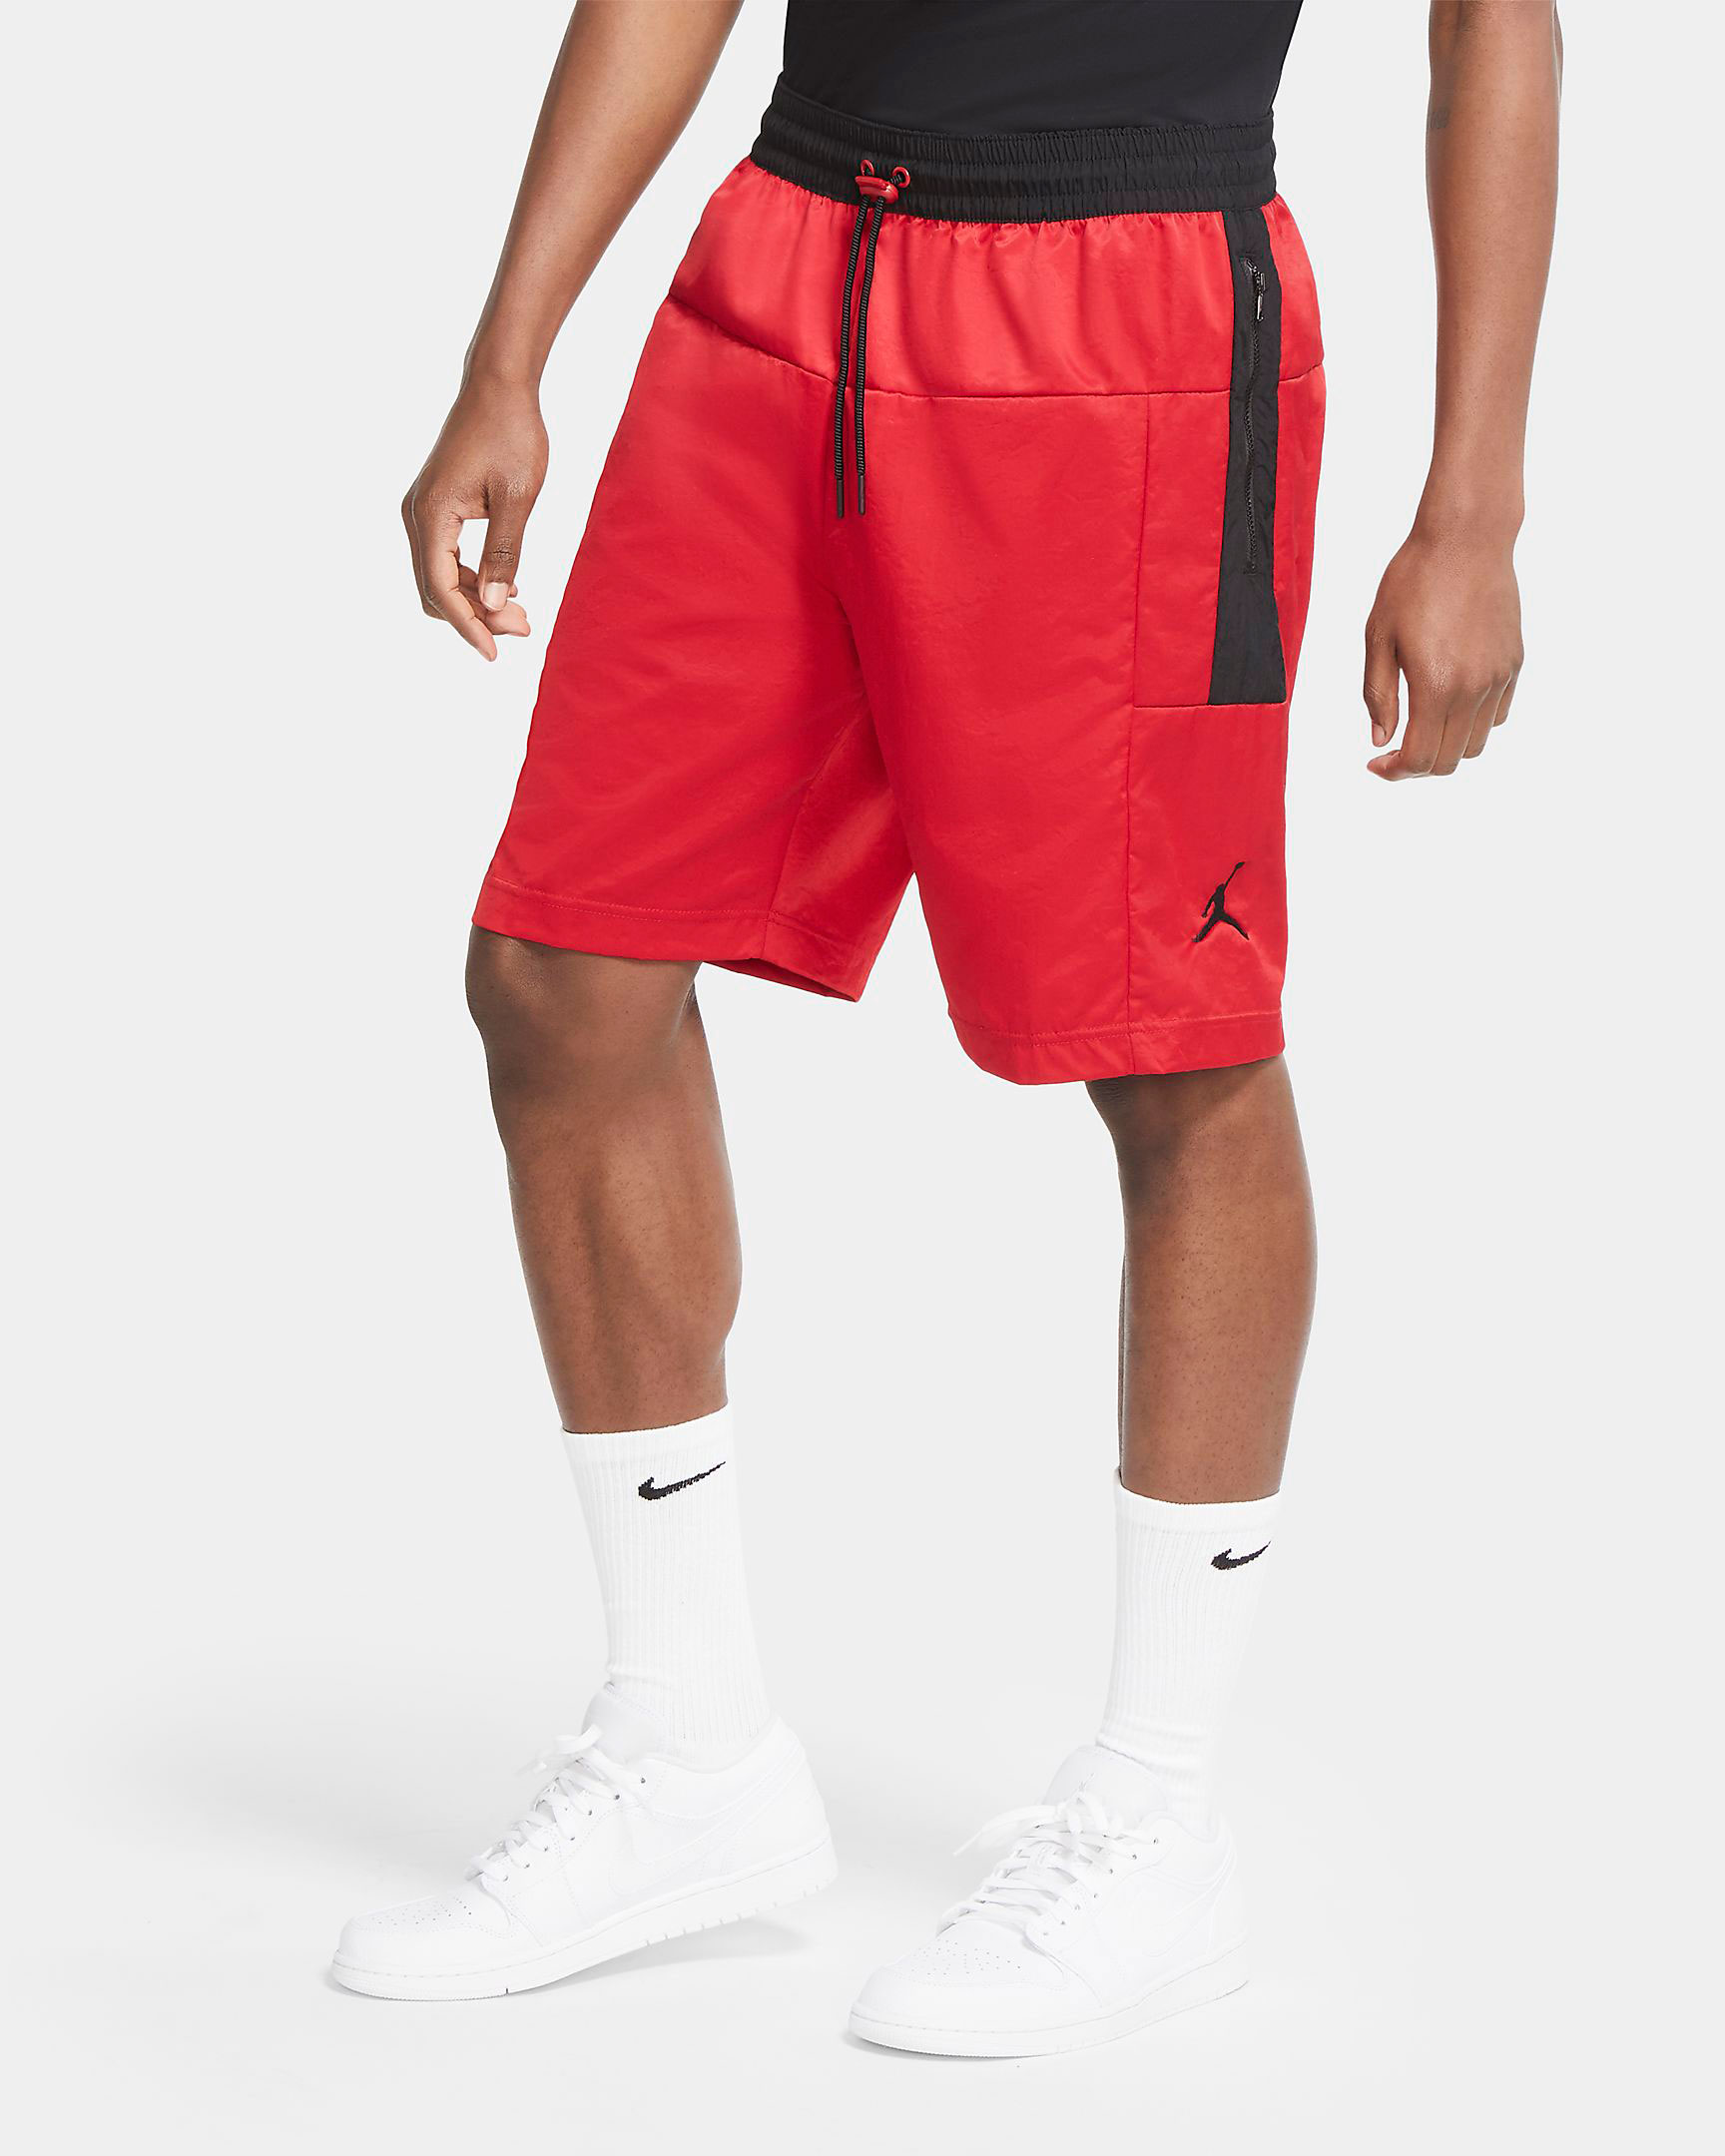 jordan-gym-red-block-shorts